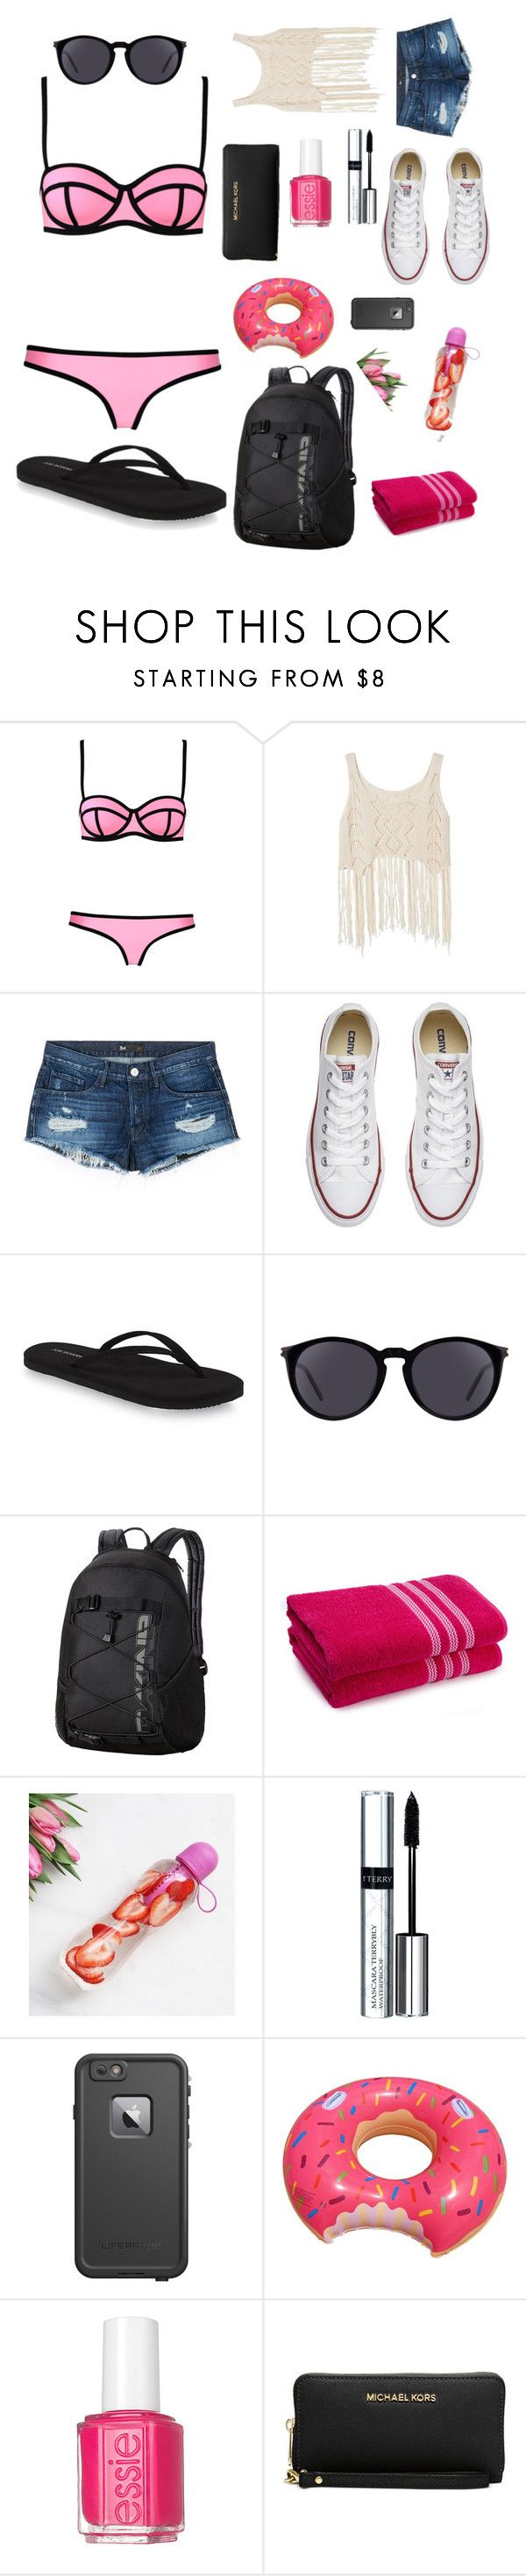 """pool day outfit  😍🌊🏊"" by soap3 ❤ liked on Polyvore featuring Milly, 3x1, Converse, Yves Saint Laurent, Dakine, By Terry, LifeProof, Essie and Michael Kors"